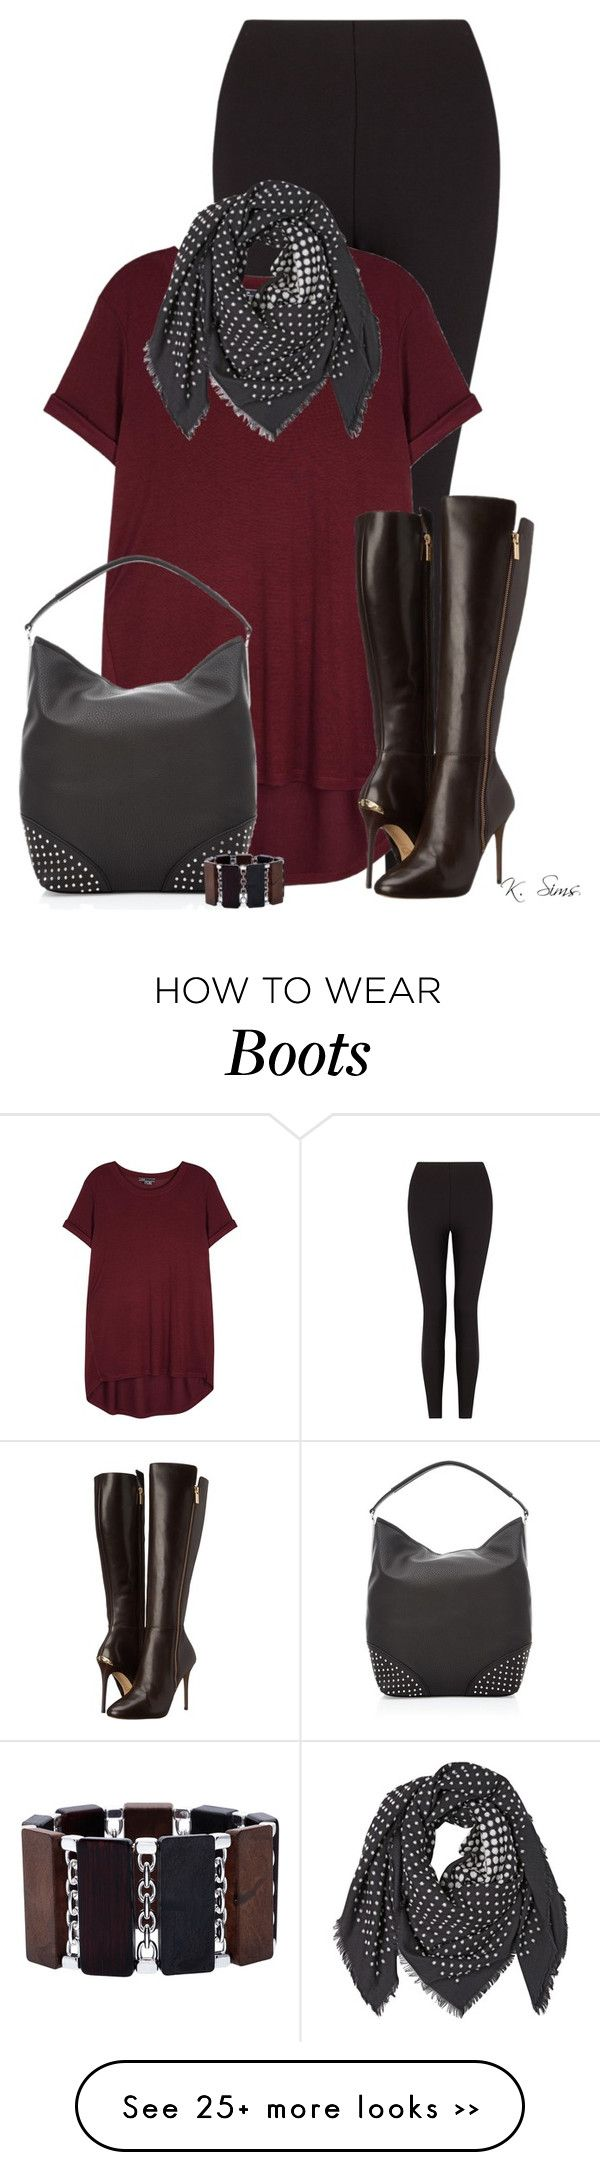 """""""Welcome to the Darkside: Boots & Scarves"""" by ksims-1 on Polyvore featuring Lyssé Leggings, Vince, Alexander McQueen, MICHAEL Michael Kors and Alexa Starr"""